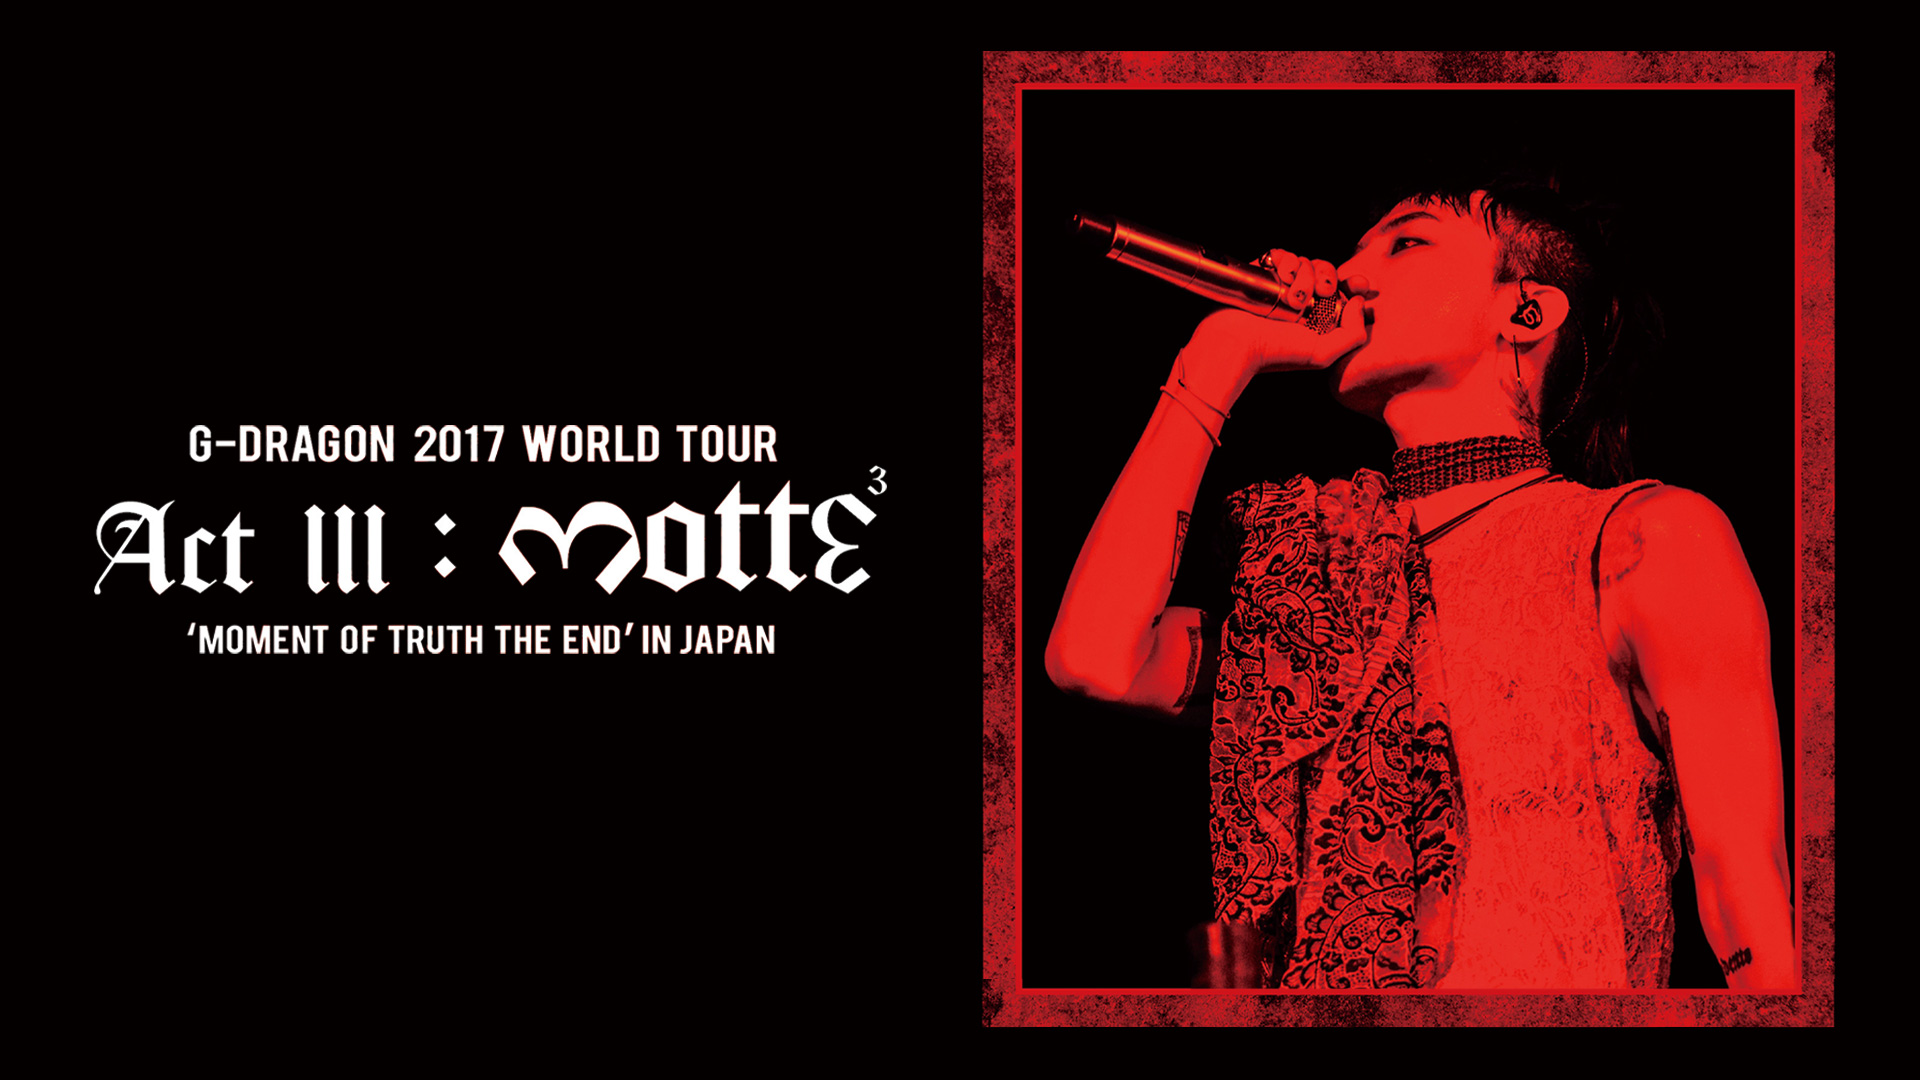 G-DRAGON 2017 WORLD TOUR <ACT III, M.O.T.T.E> IN JAPAN (Edited Version)